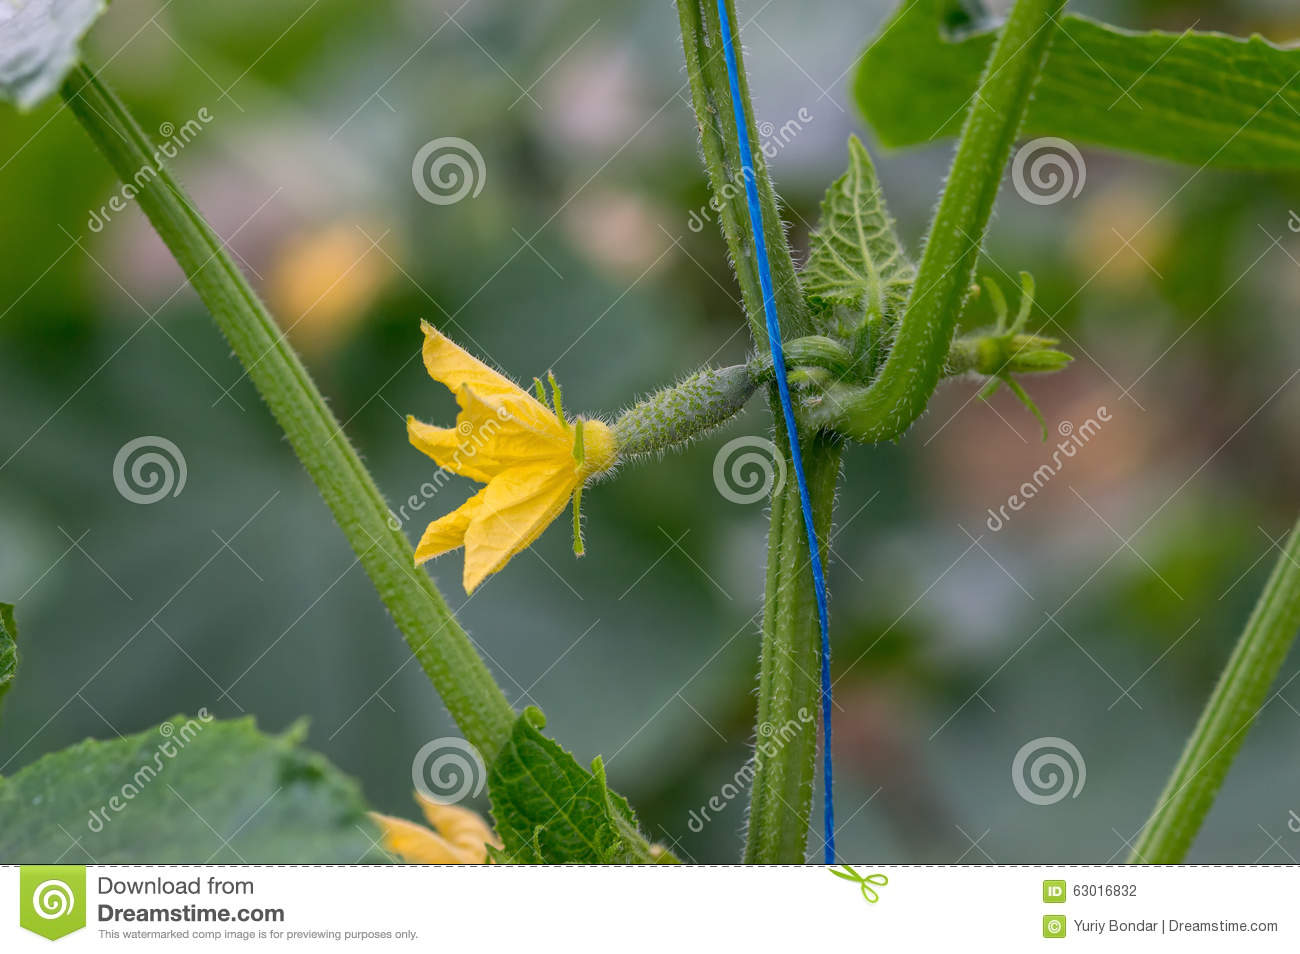 Growing Cucumbers In Greenhouses Stock Photo.